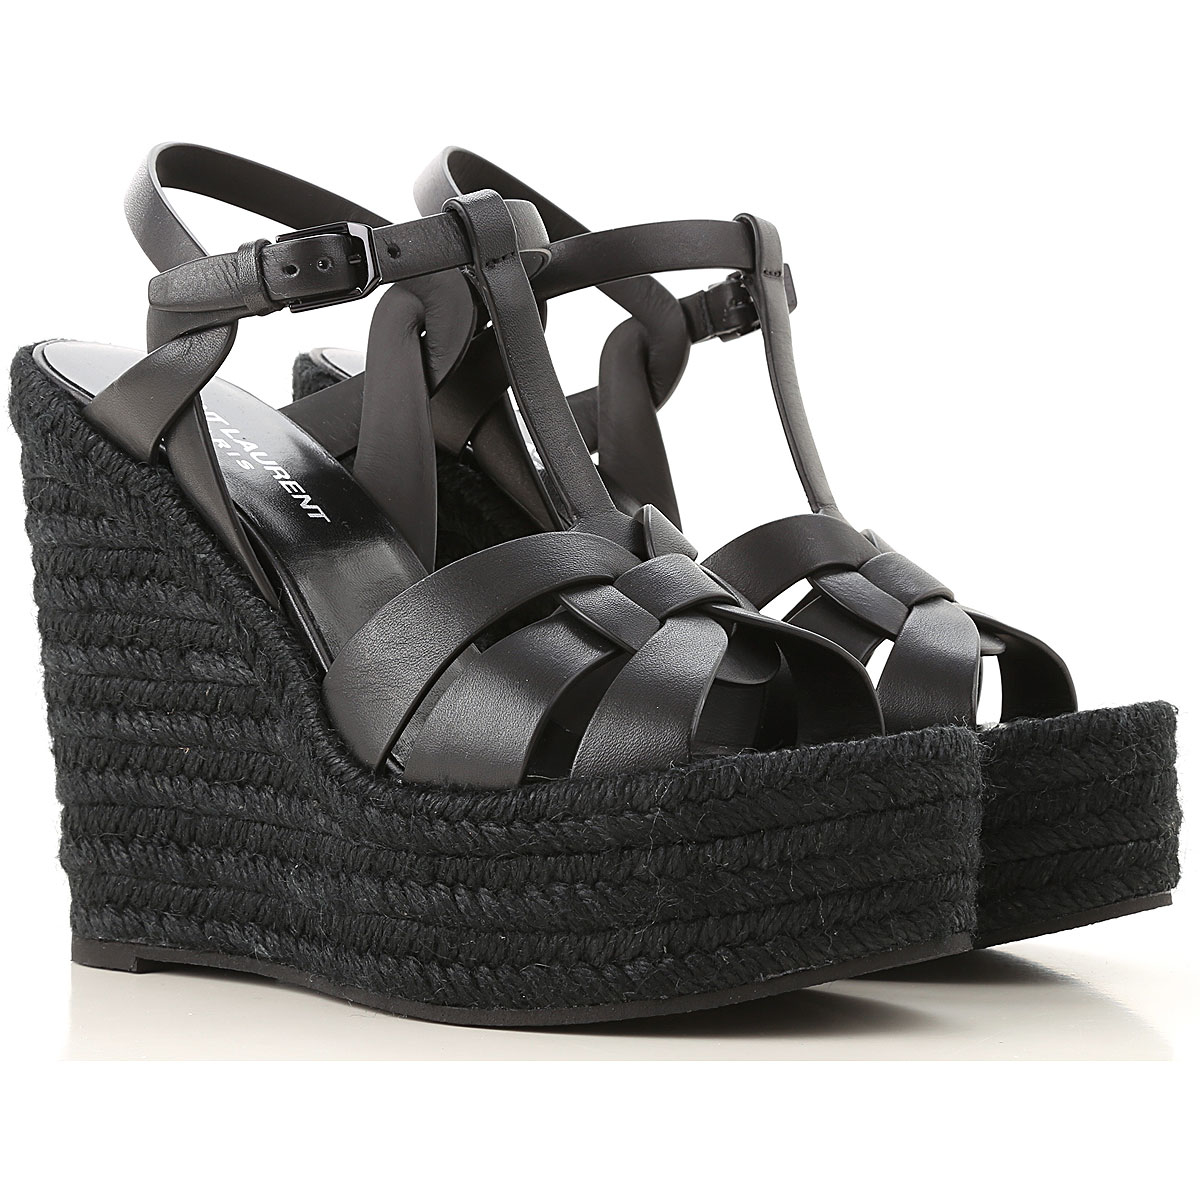 Yves Saint Laurent Wedges for Women Black Canada - GOOFASH - Womens HOUSE SHOES